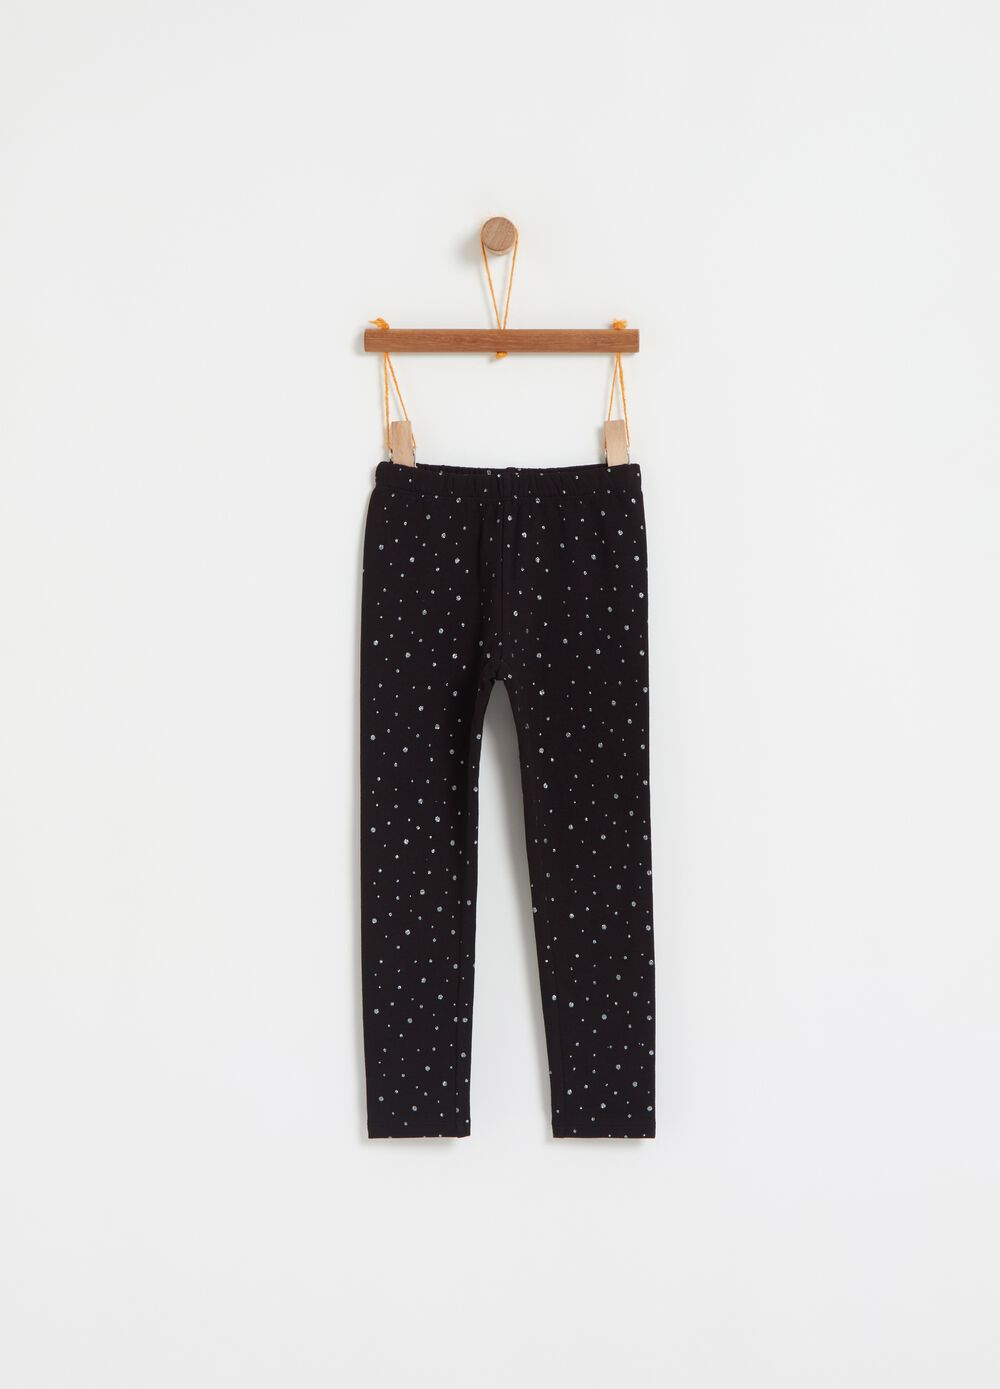 Stretch leggings with all-over glitter polka dots